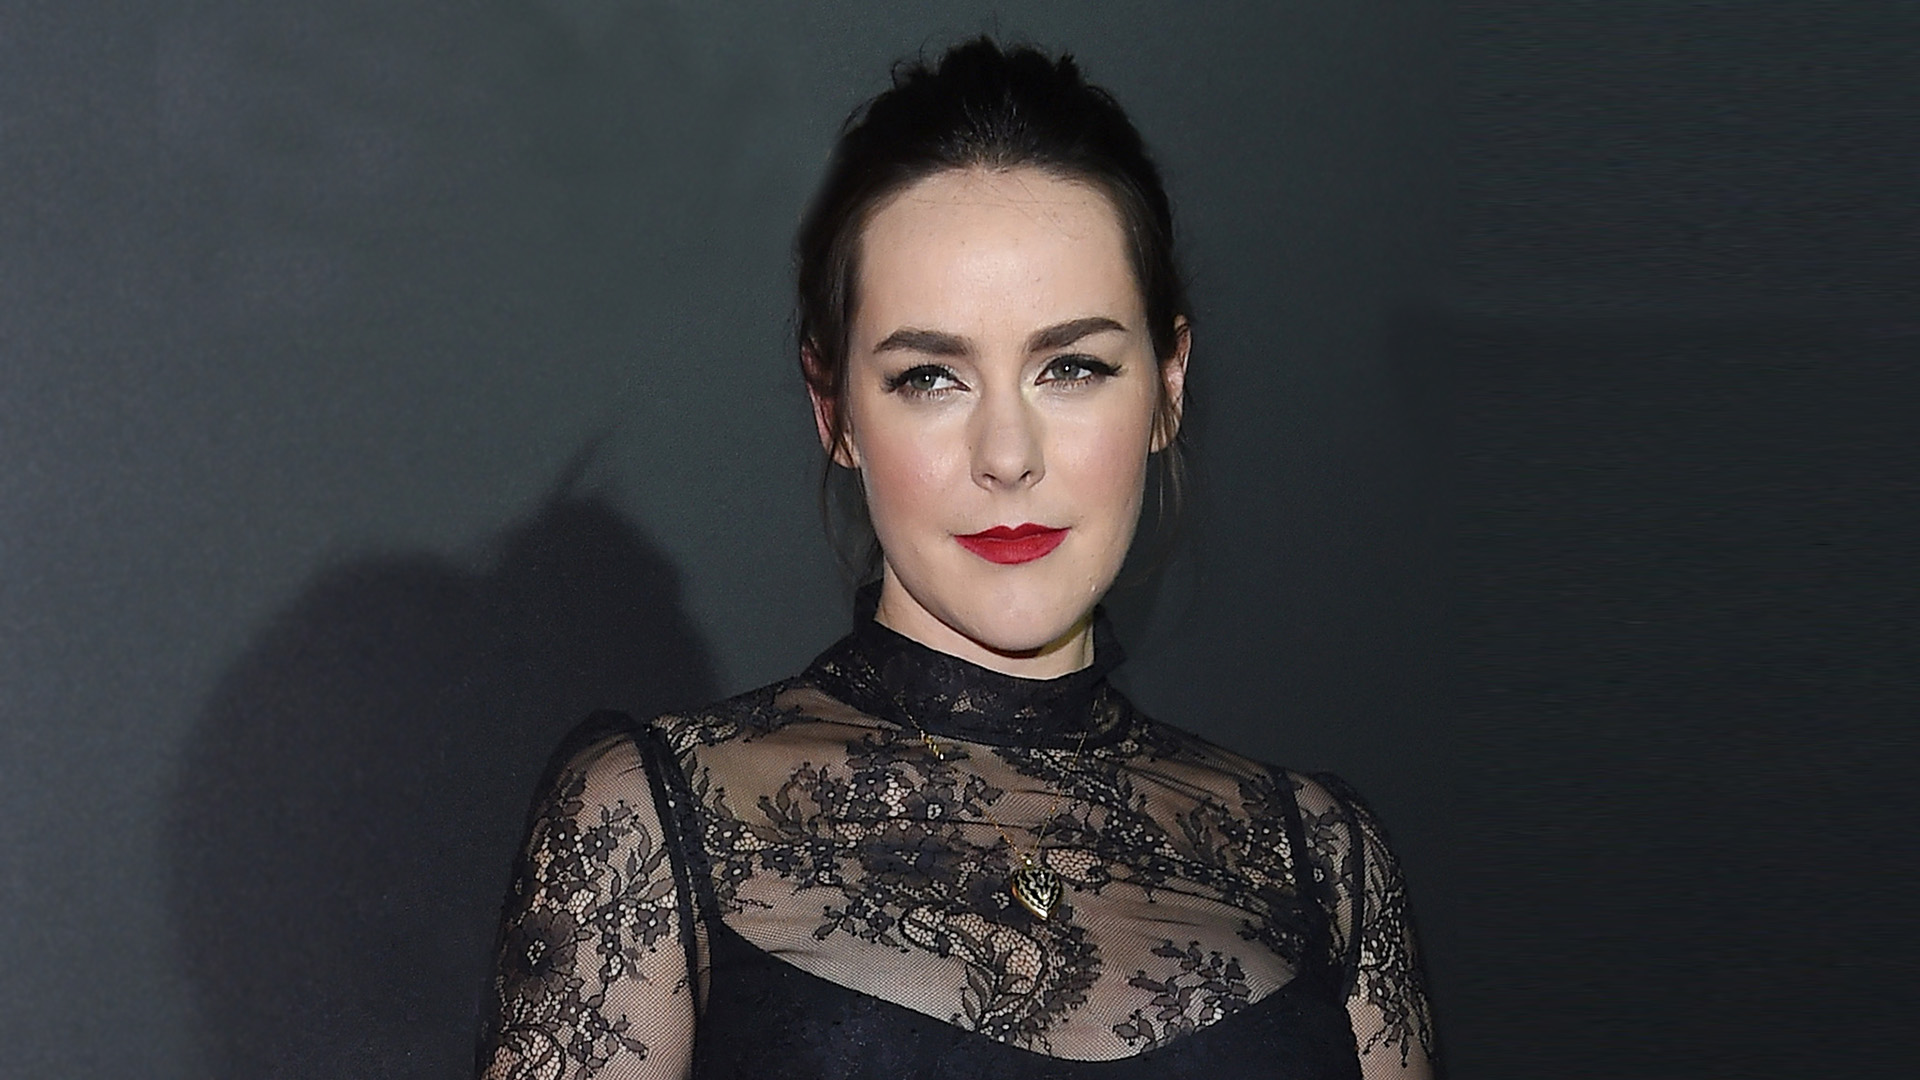 Images Jena Malone nude photos 2019